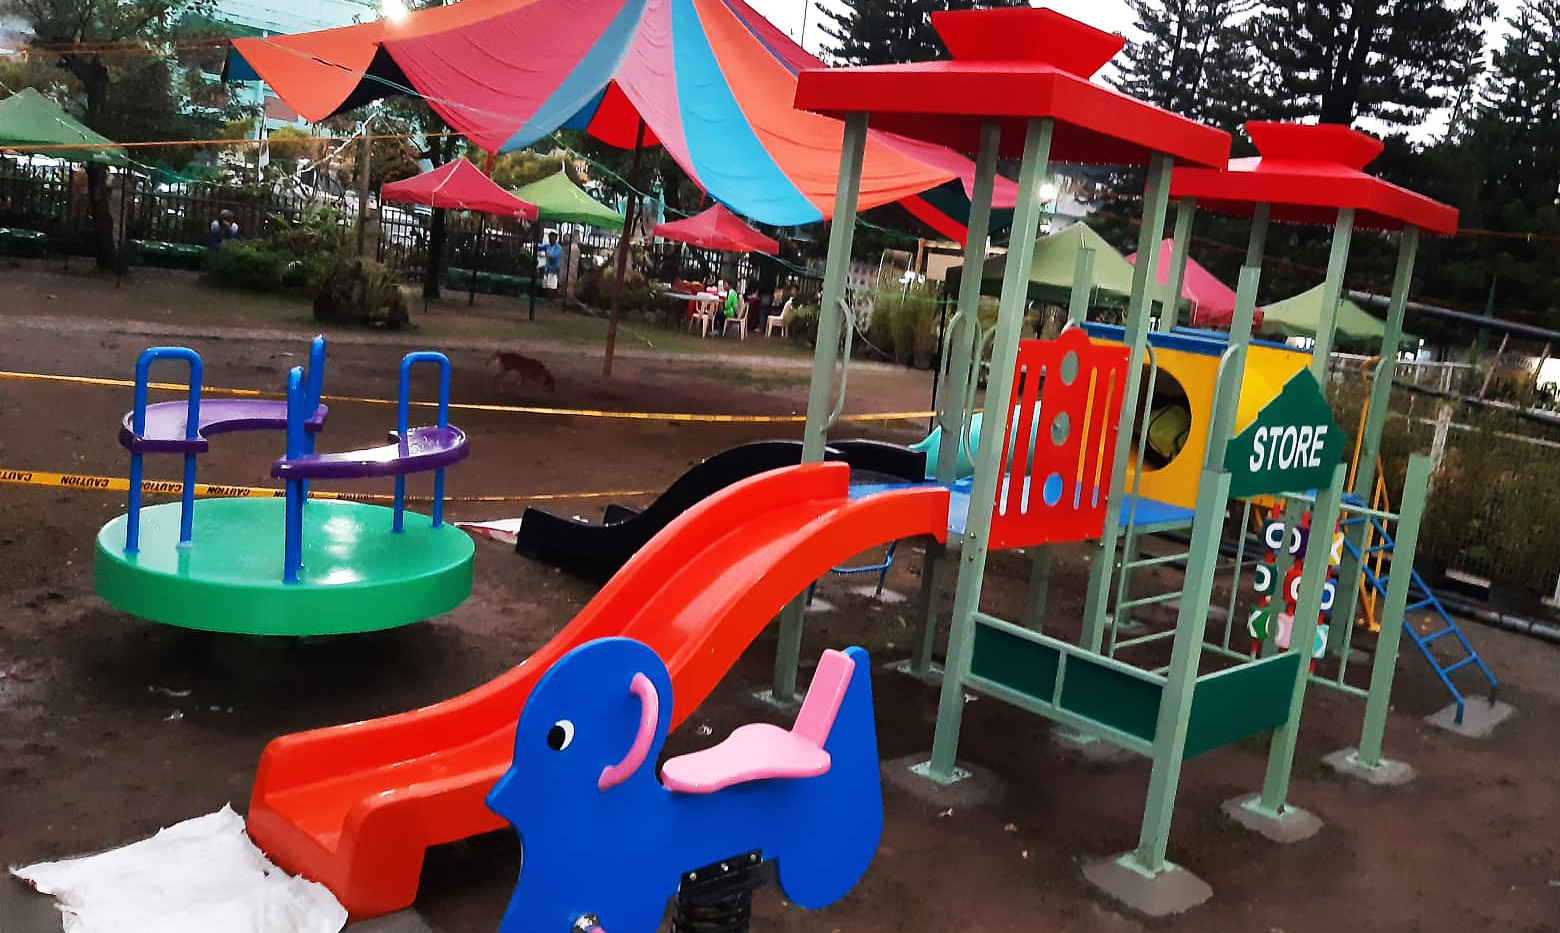 Play Equipment #11  - Tube Slide - Small Wave Slide - Crawl Tube - Roofing - Tic - Tac - Toe - Stair - Panel Design - Stair with steel railing - Rib Ladder  Lot Area: L-6.5 x W-5 Meter Suitable for age 3 to 7 yrs old